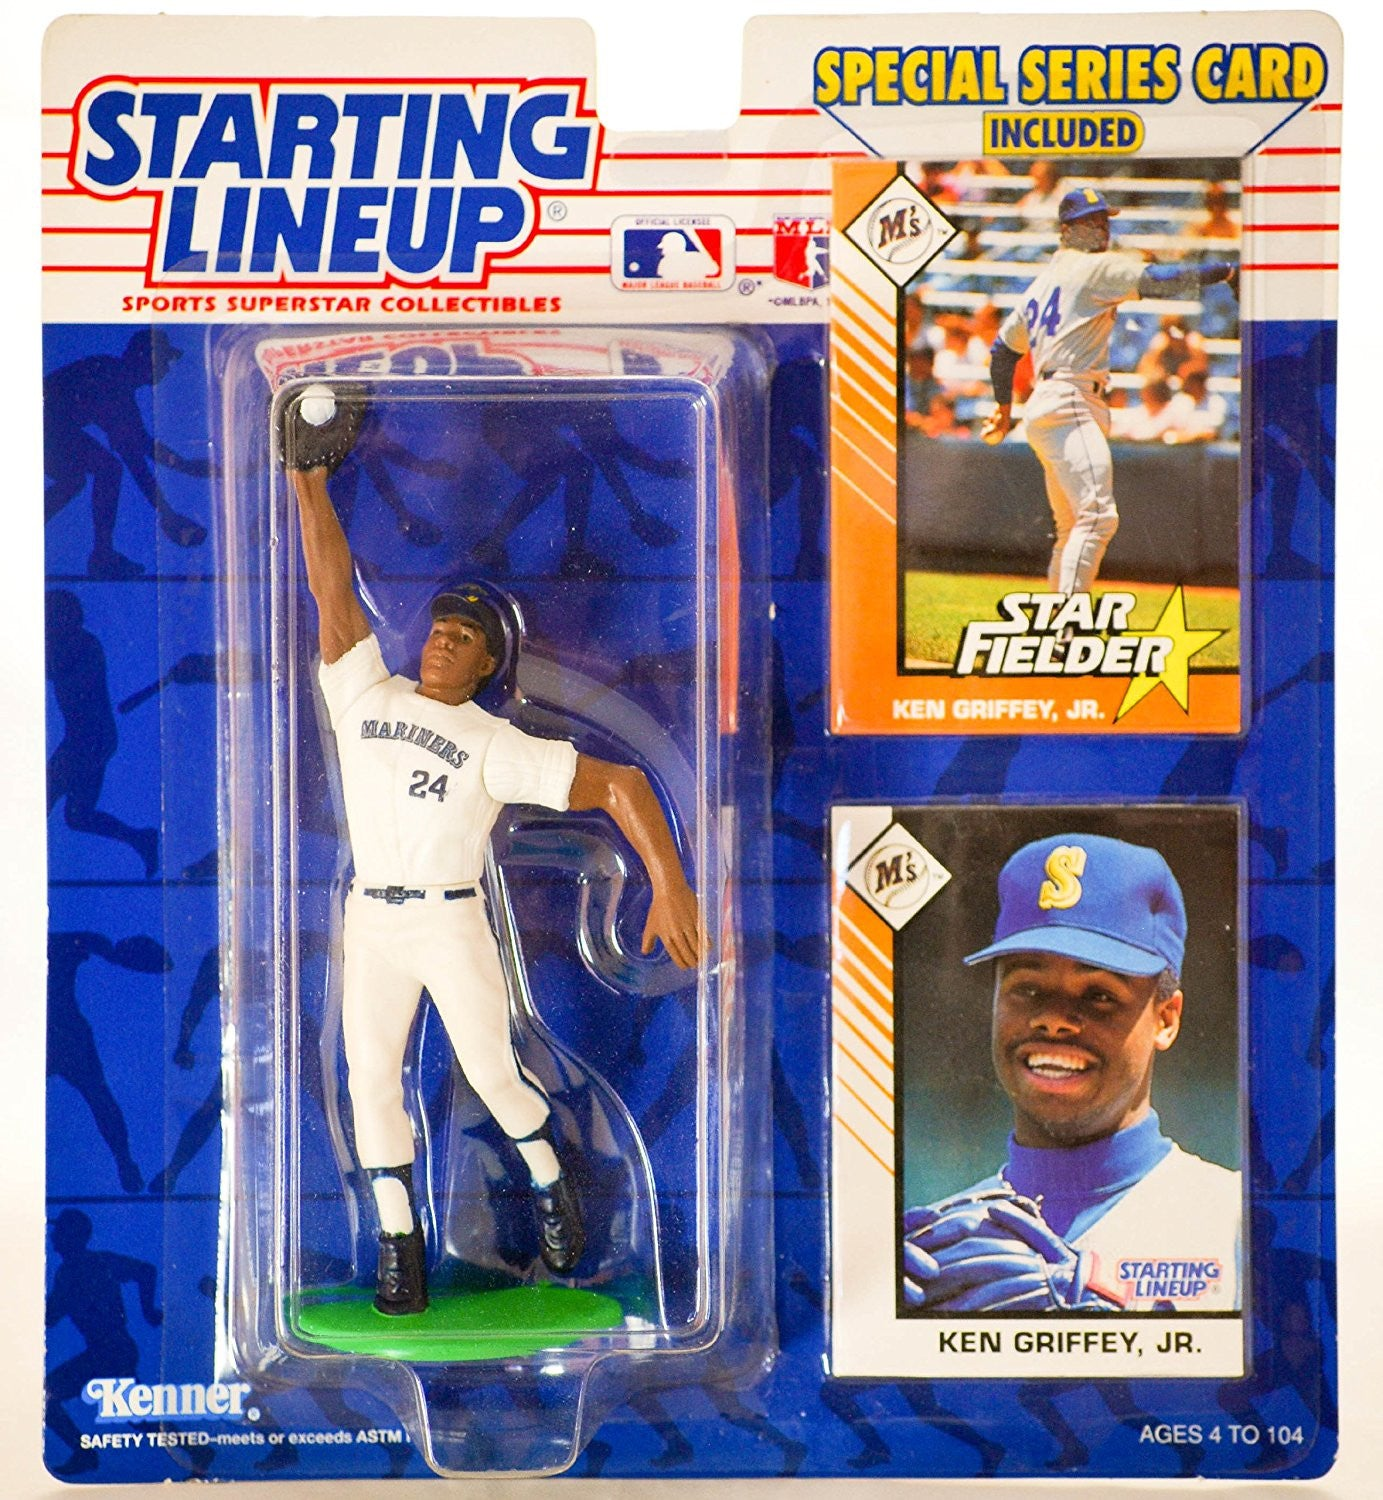 Ken Griffey, Jr. Action Figure in Seattle Mariners 1993 Starting Lineup MLB Sports Superstar Collectible - Special Series Card Included